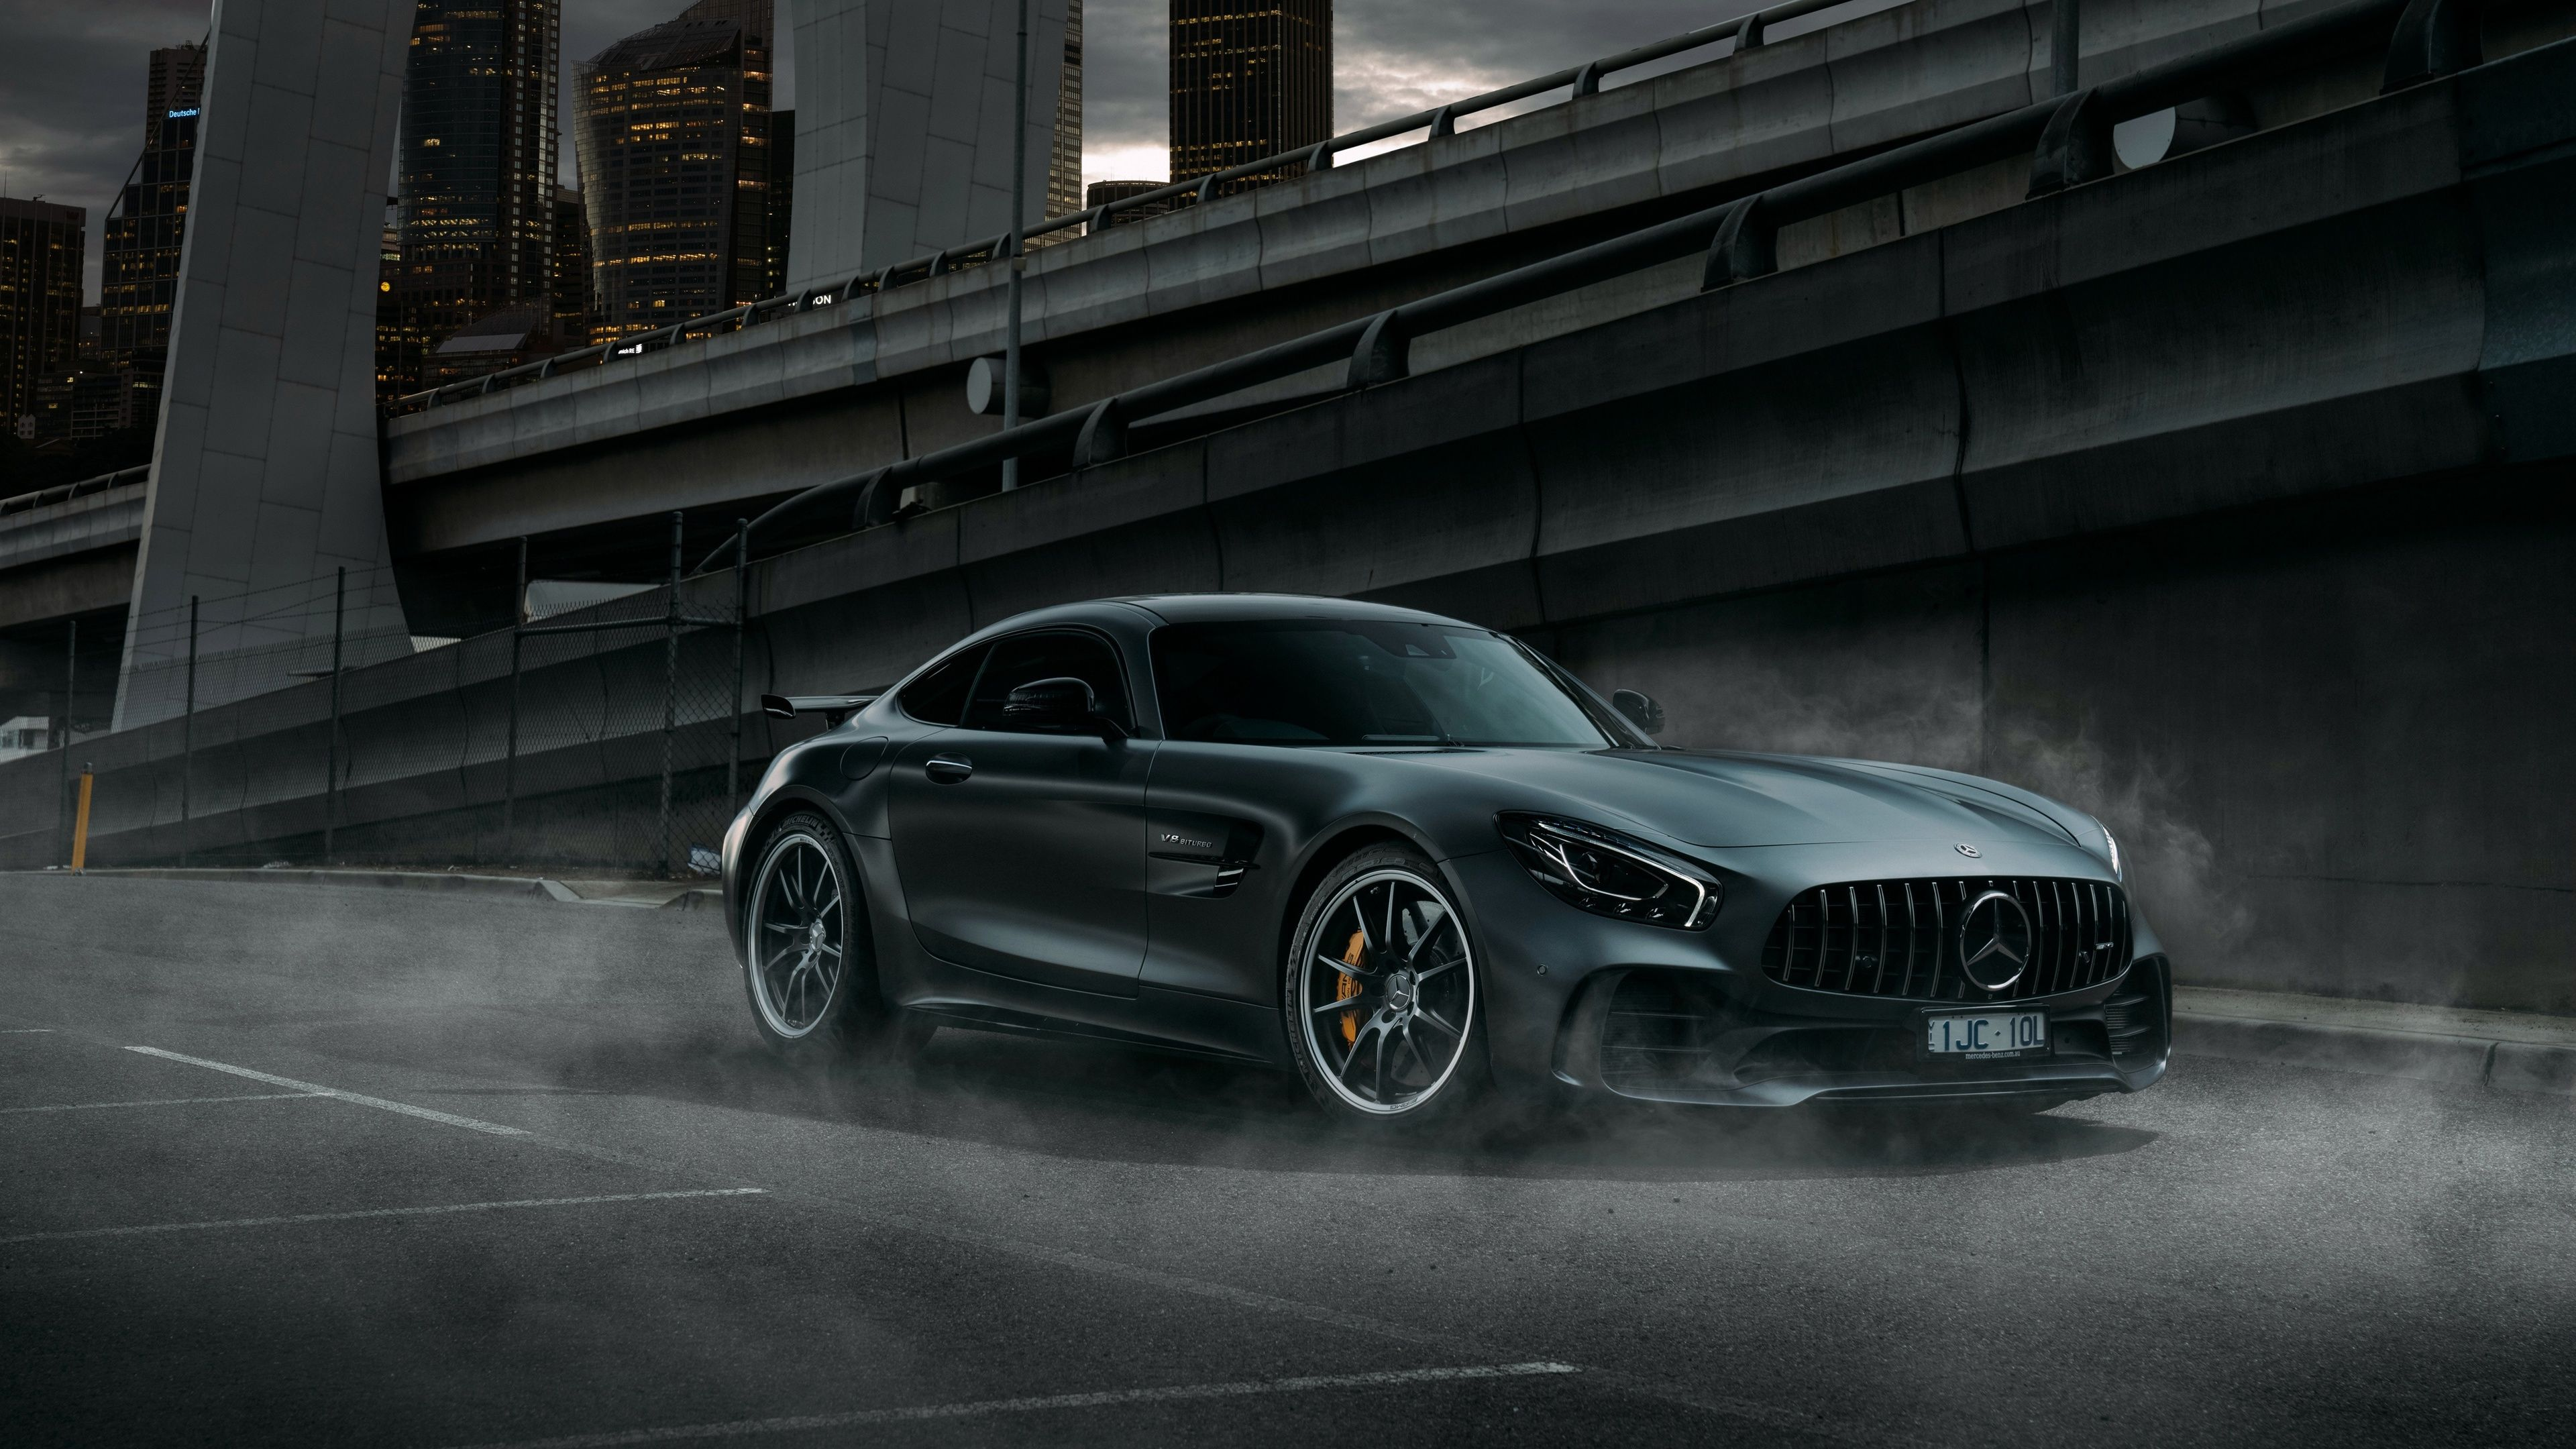 2018 Mercedes Benz Gt R Amg Mercedes Wallpapers Mercedes Benz